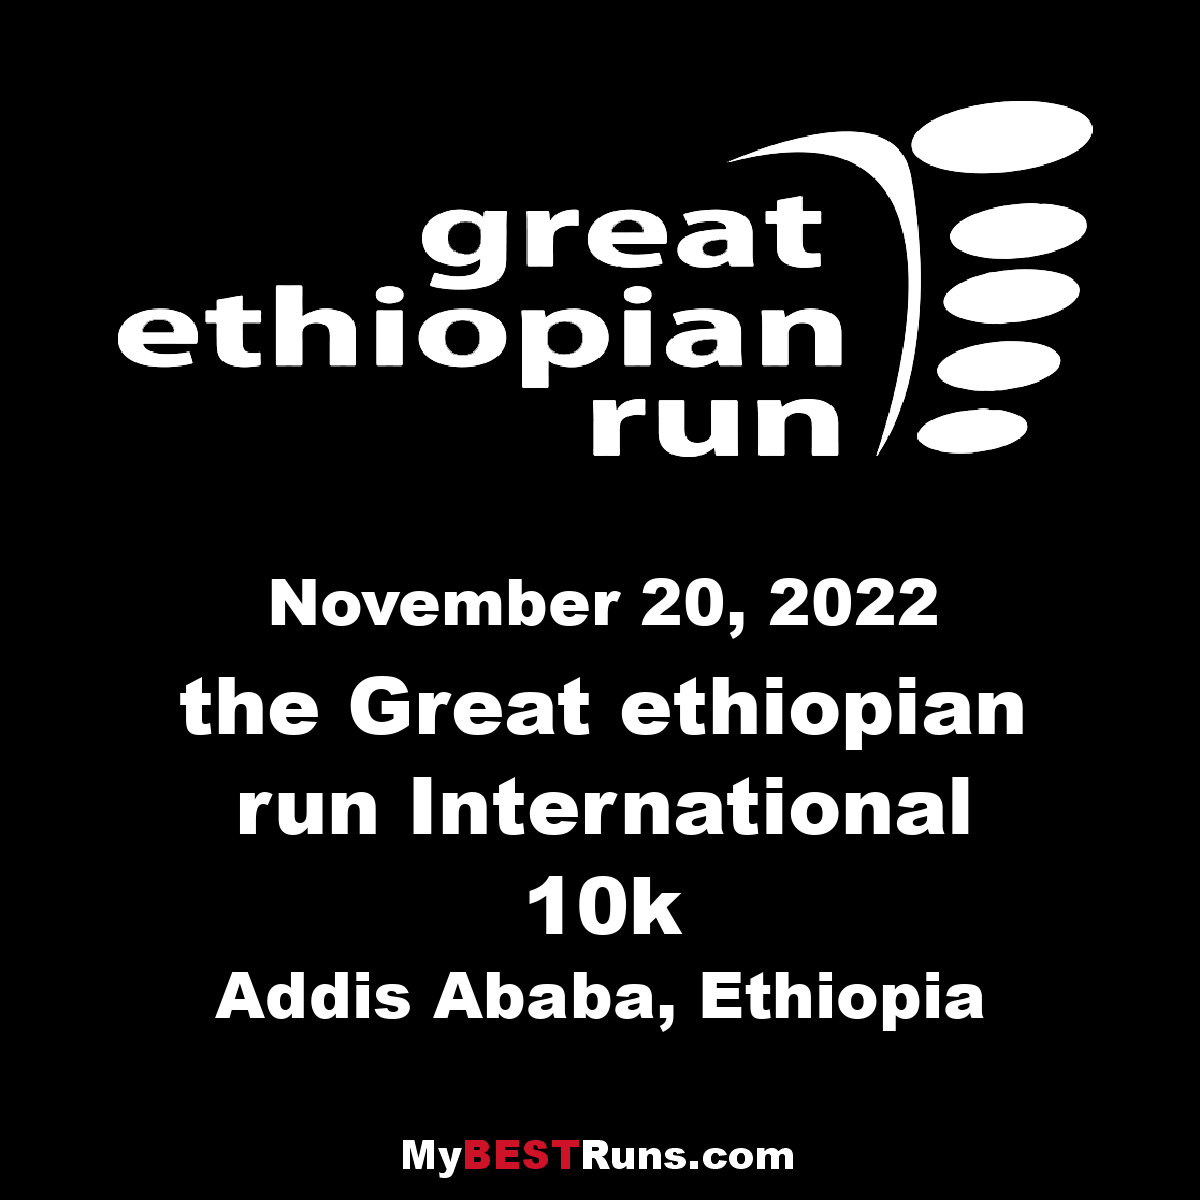 the Great ethiopian run International 10k